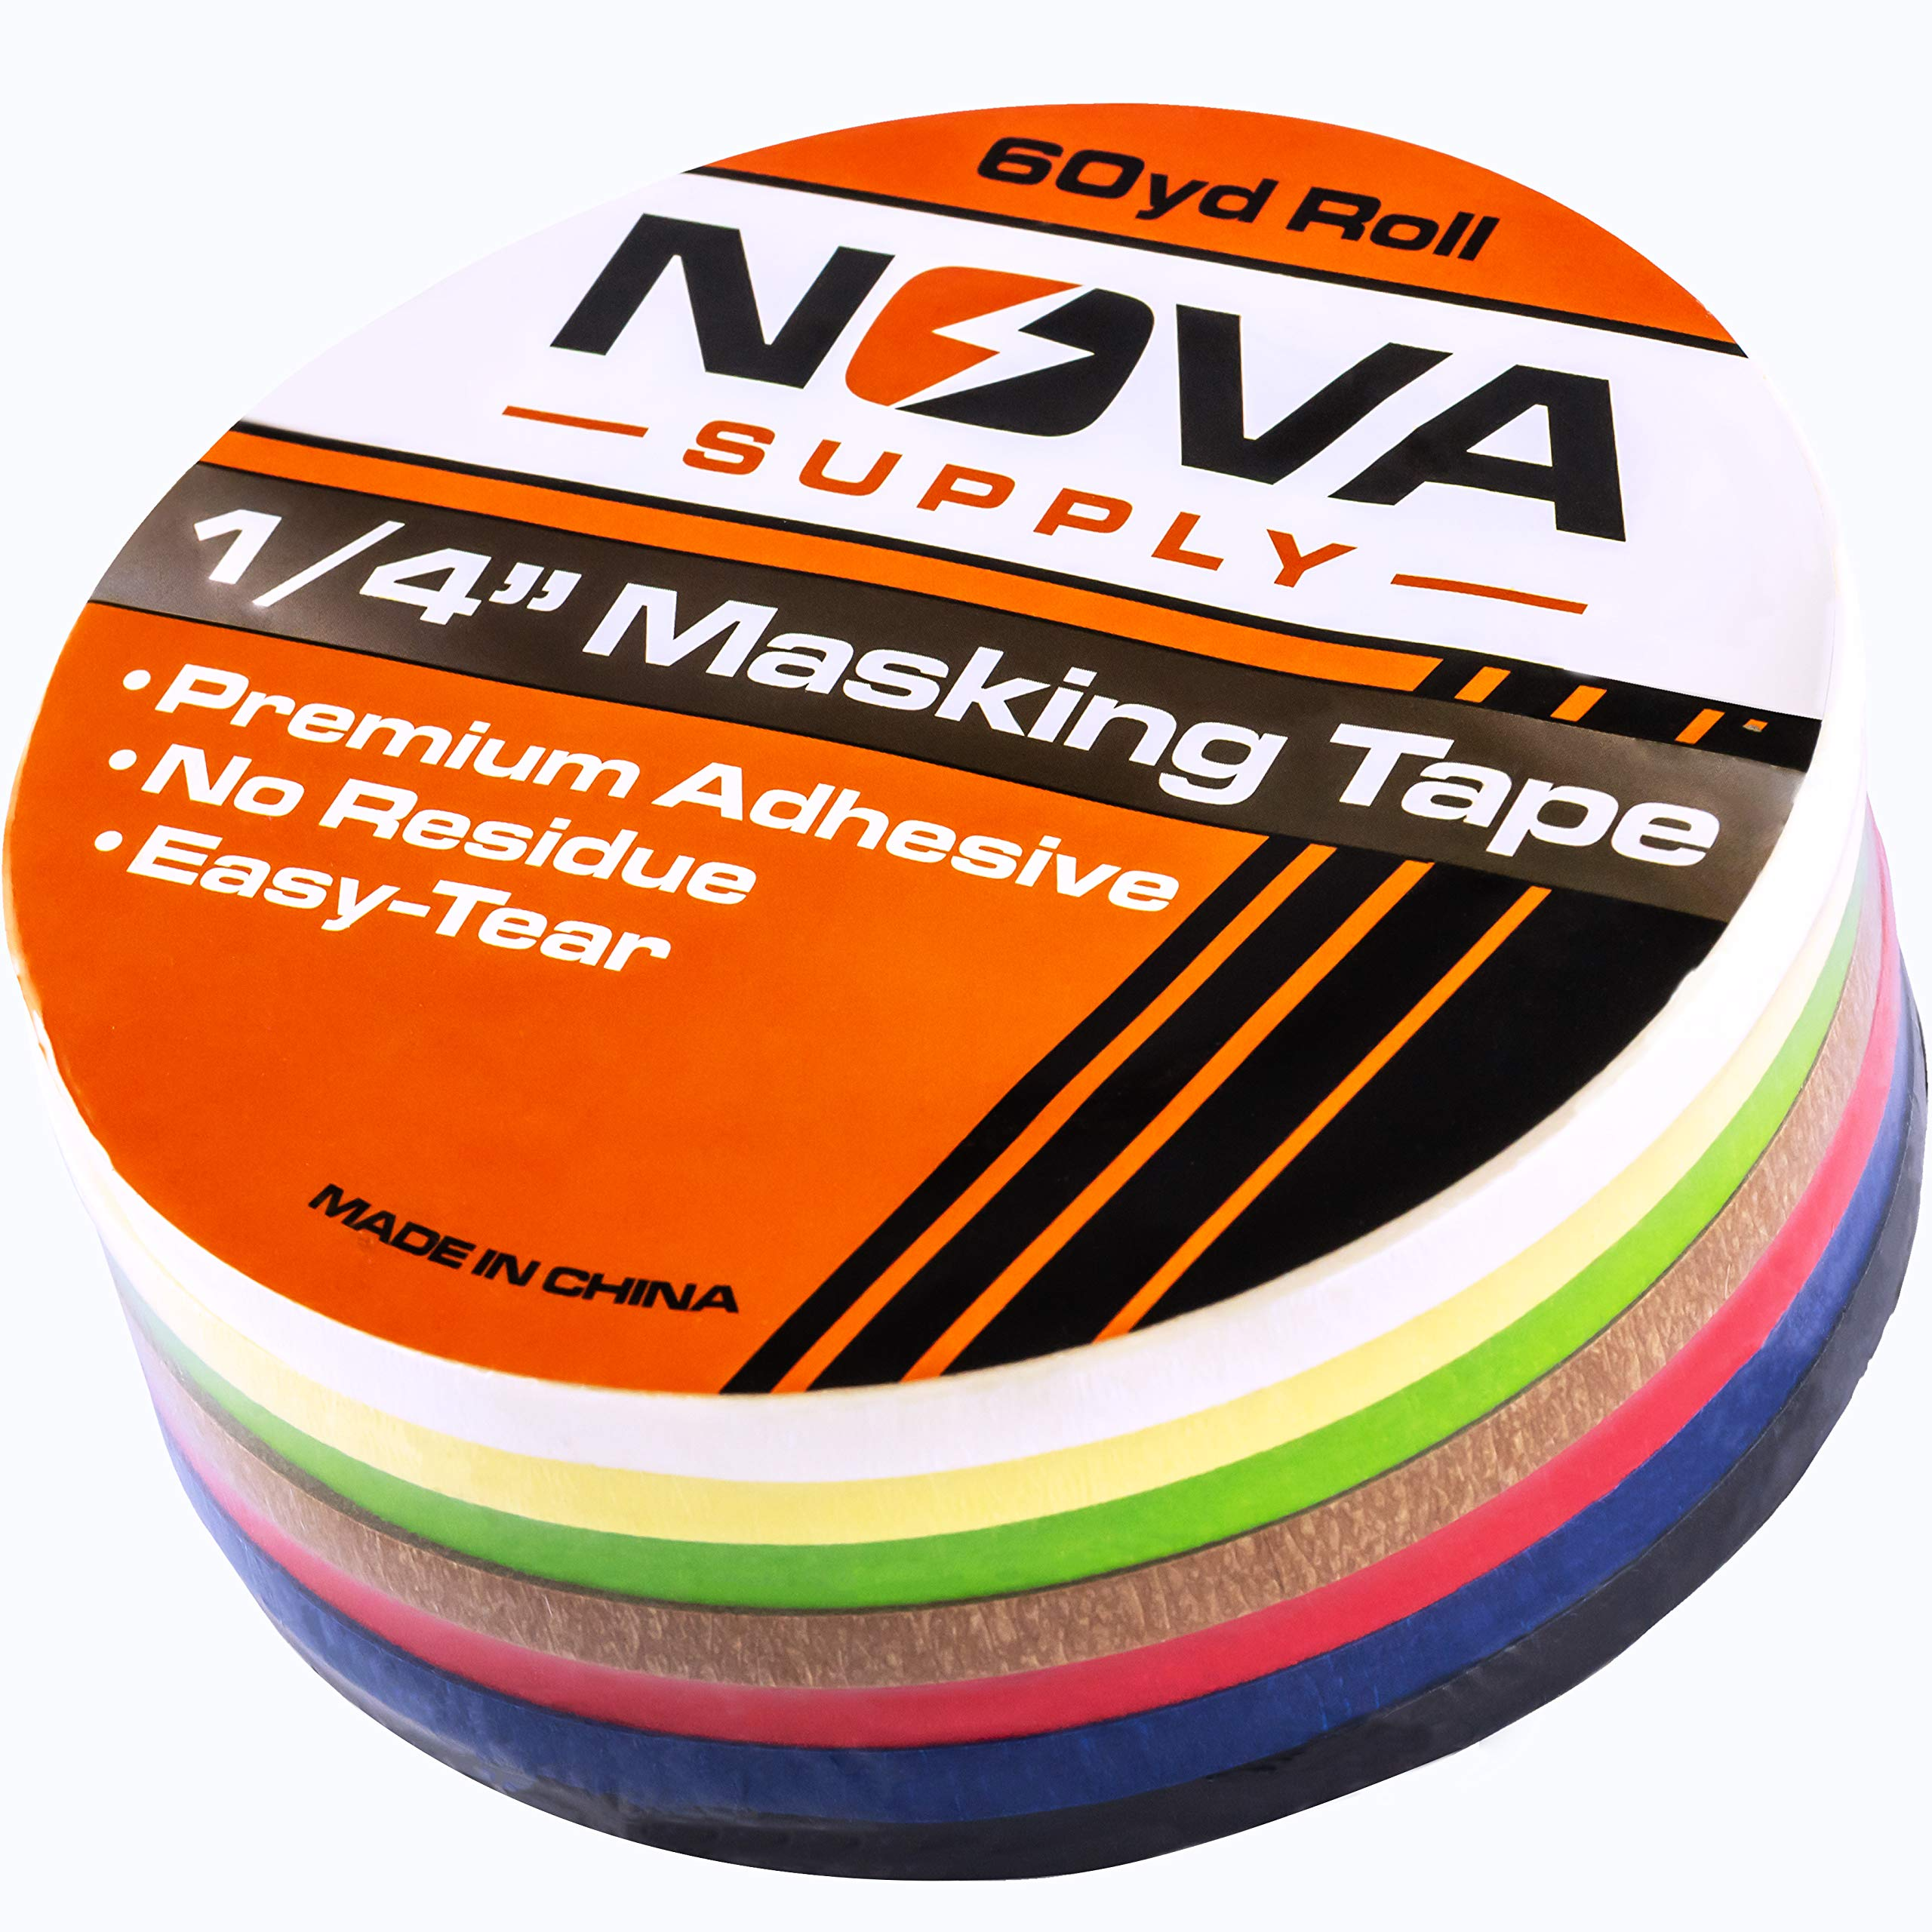 Premium 7 Color Value Pack of 1/4in x 60yd Adhesive Masking Tape. Use in Arts and Crafts Projects, Painting, Labeling or for Home and Classroom Decorating. Organize and Color Code Folders and Boxes. by Nova Supply Co